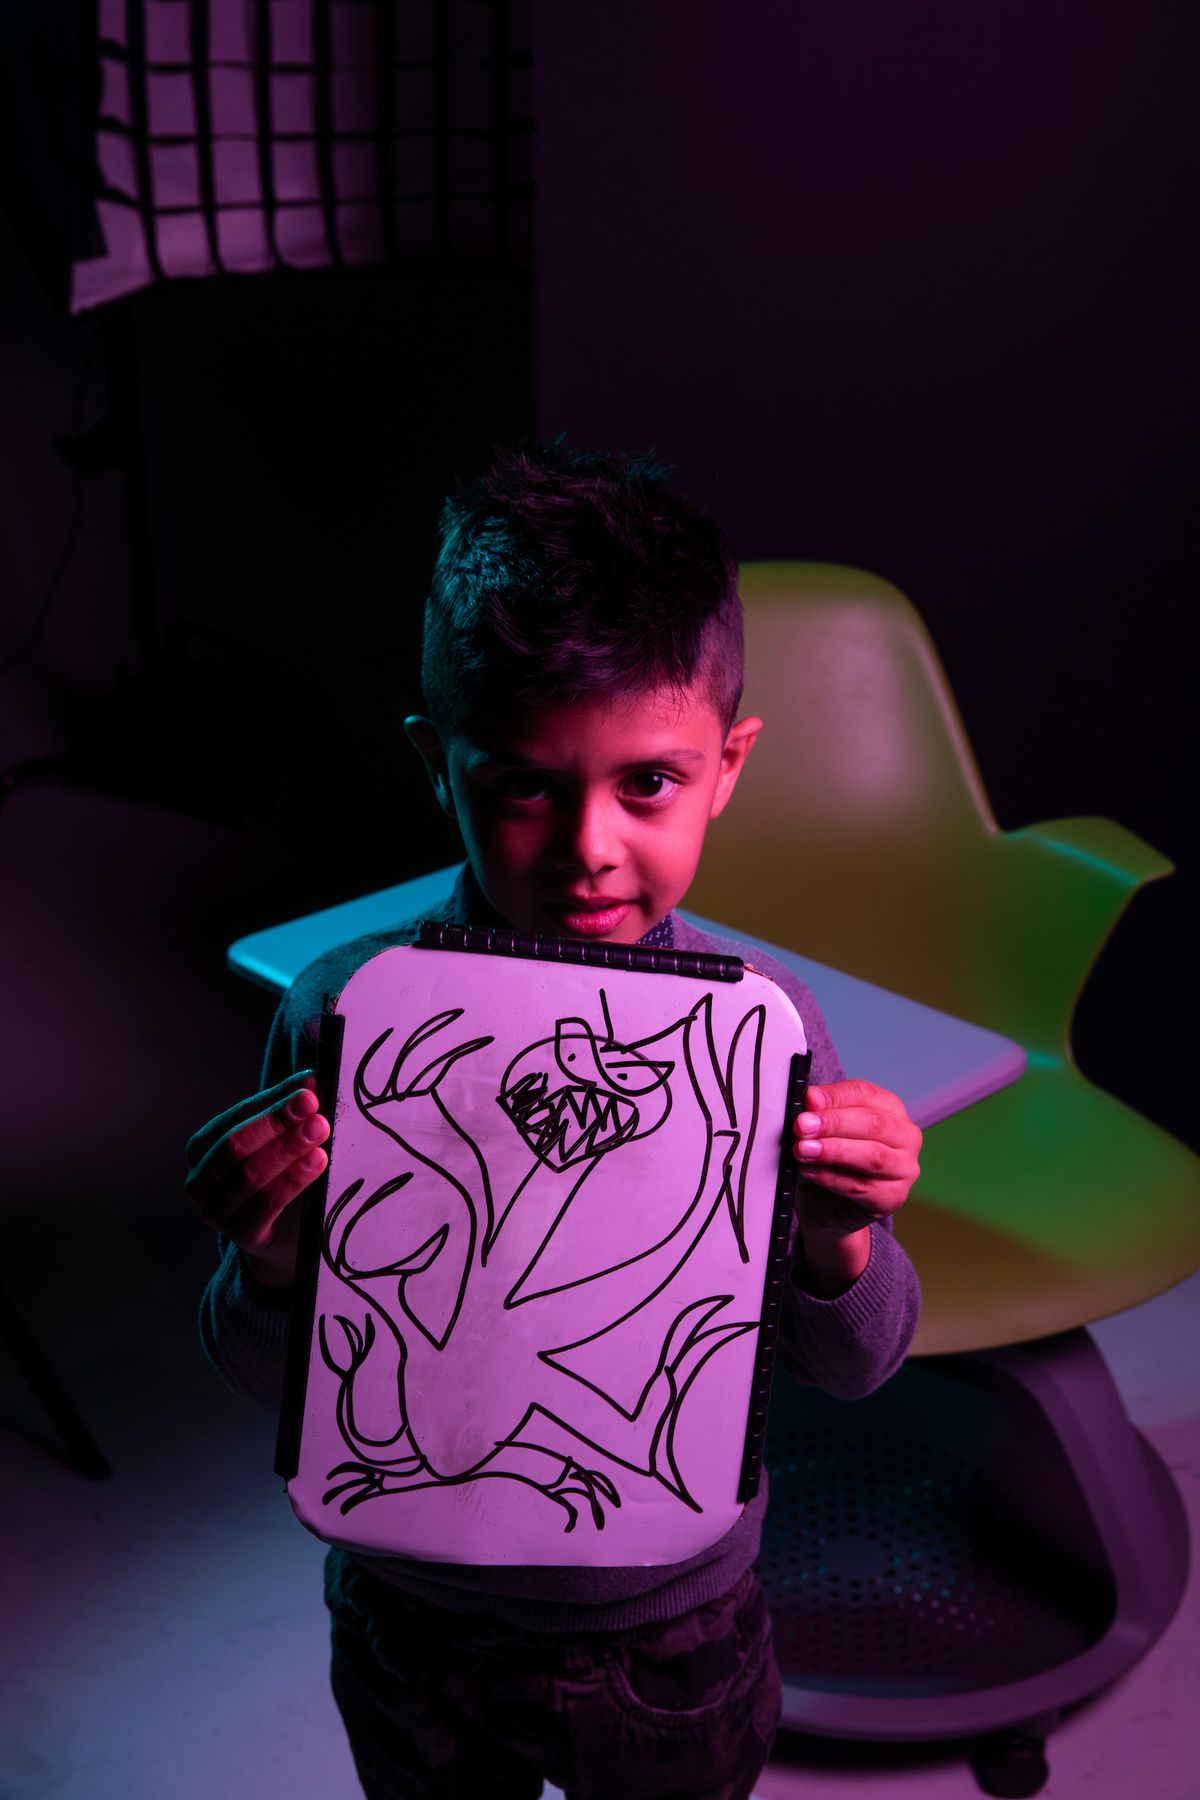 Benjamin holds a piece of his artwork at Utah Valley University in Orem on Friday, Oct. 30, 2020. Benjamin is a participant in the Super Spectrum Showcase and Soiree at the Melisa Nellesen Center for Autism at UVU.